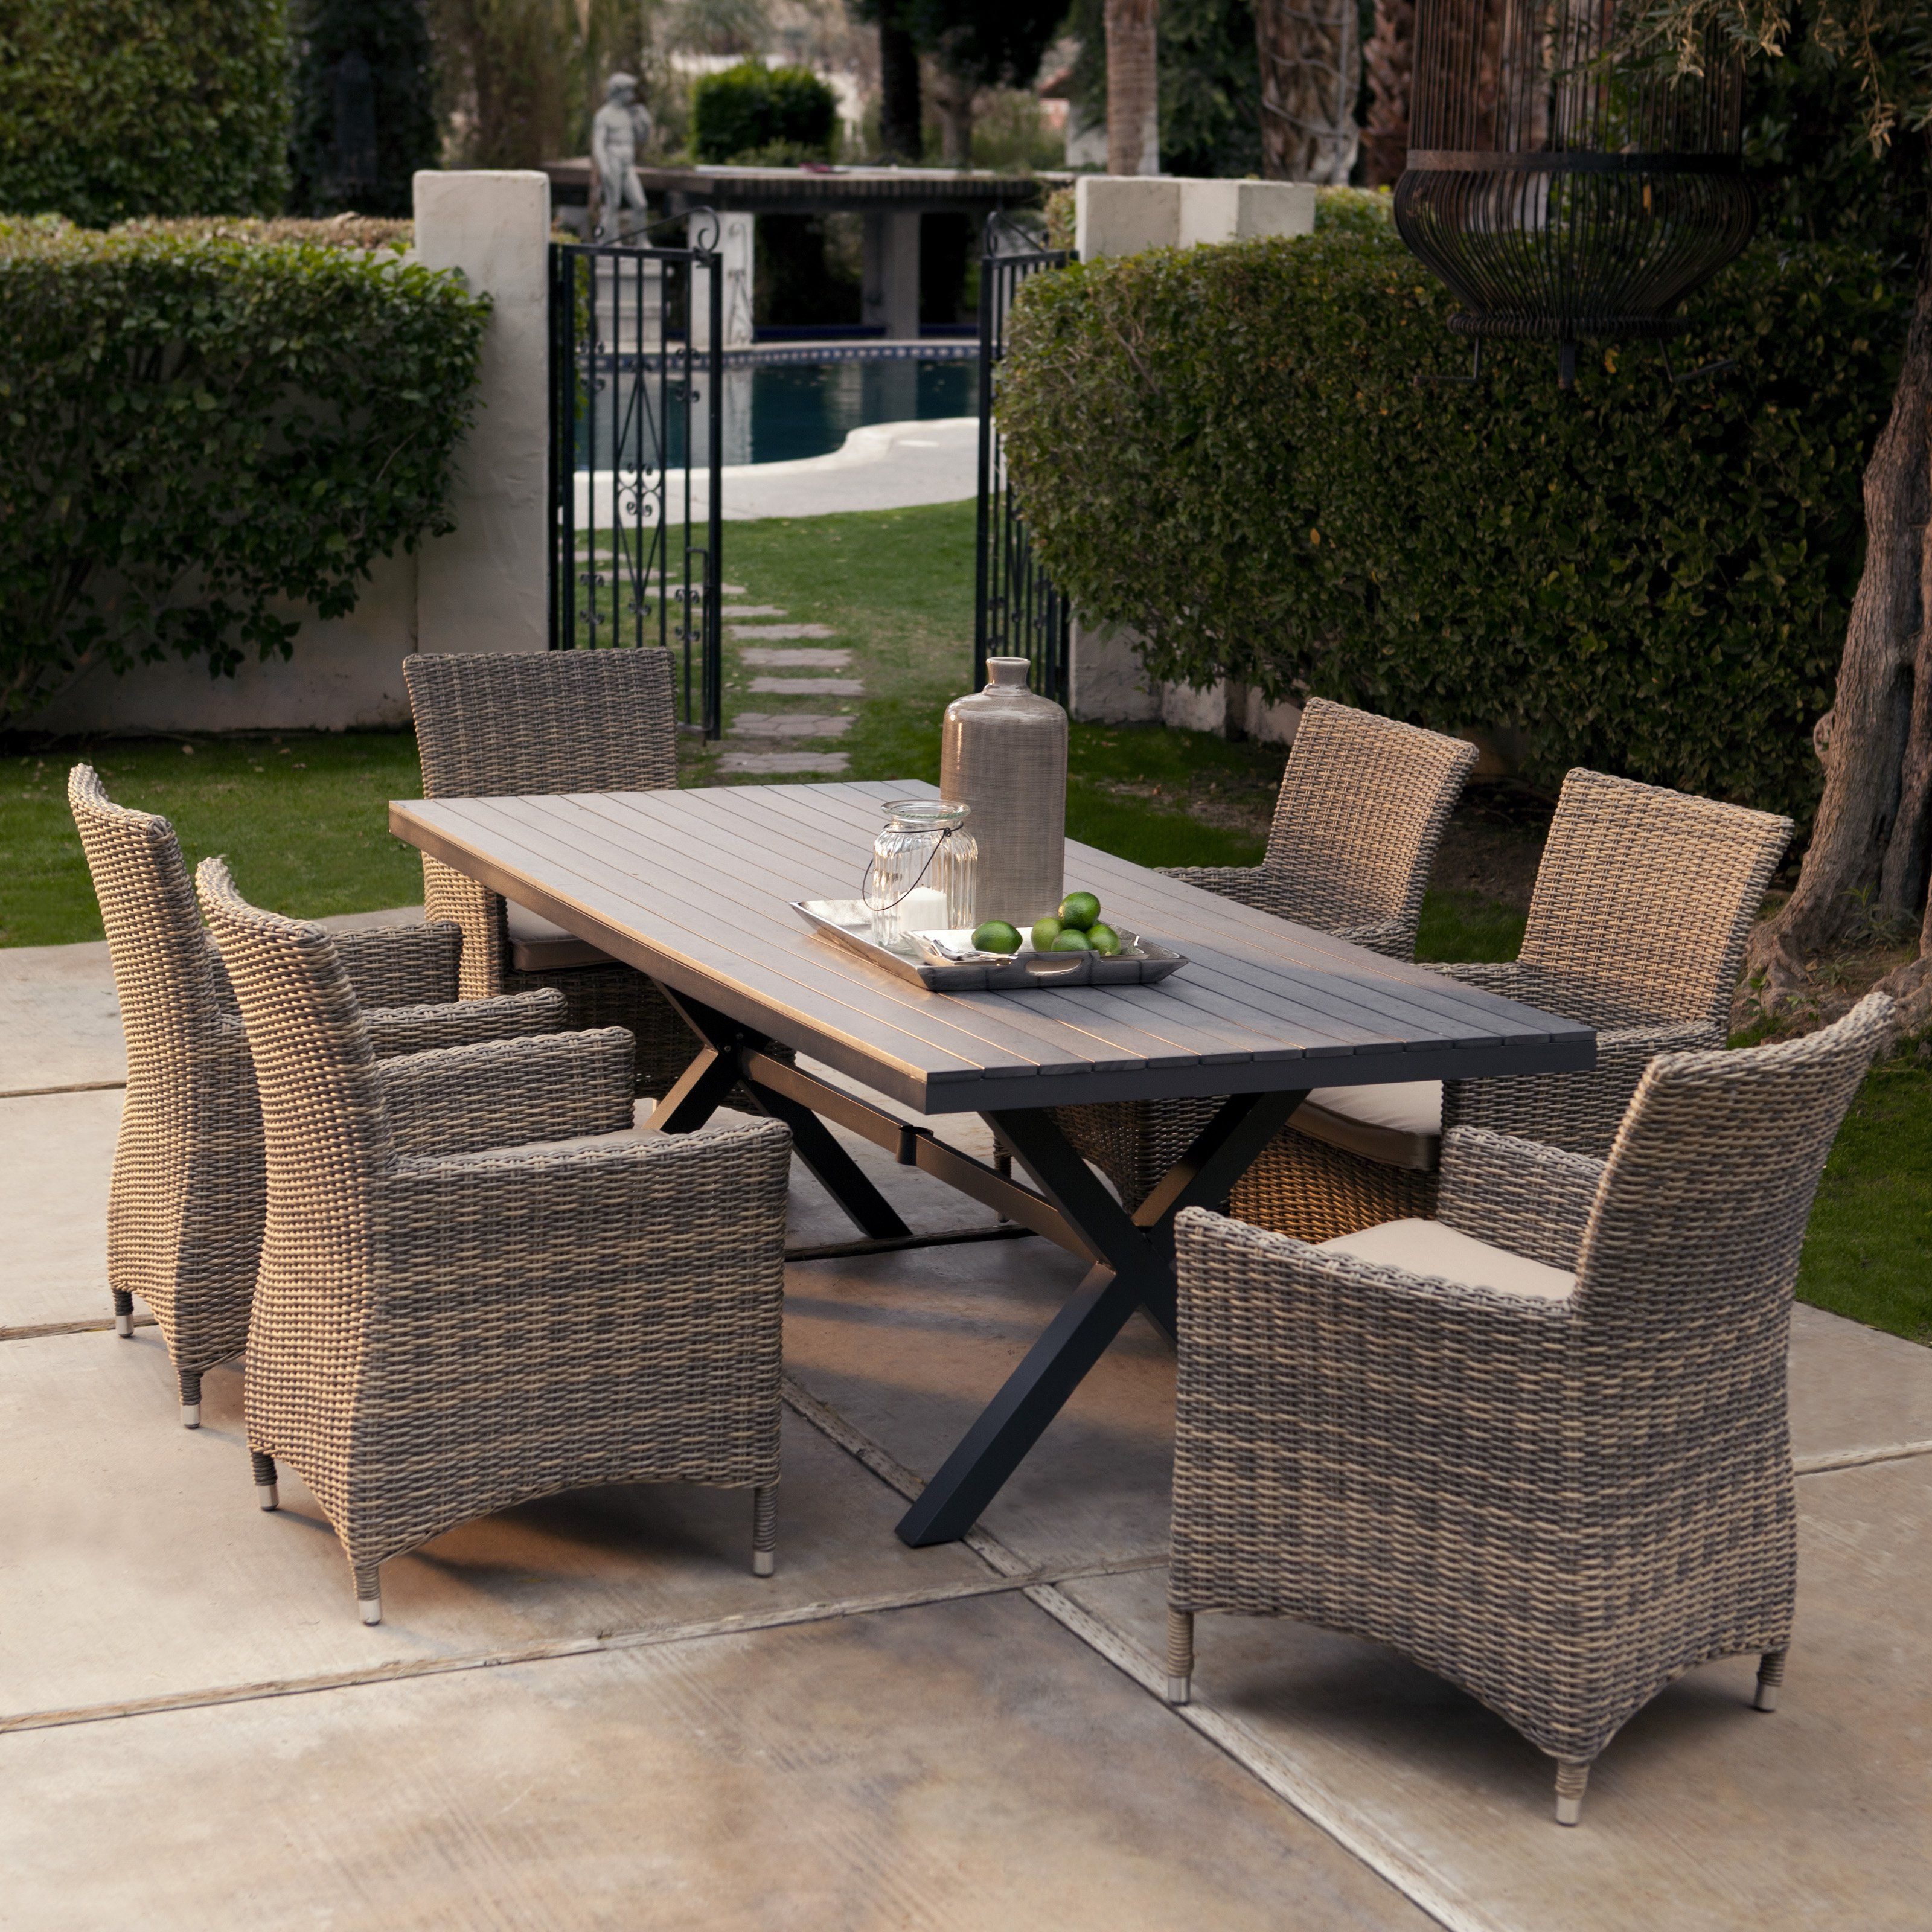 add 2 more chairsbelham living bella all weather wicker patio dining